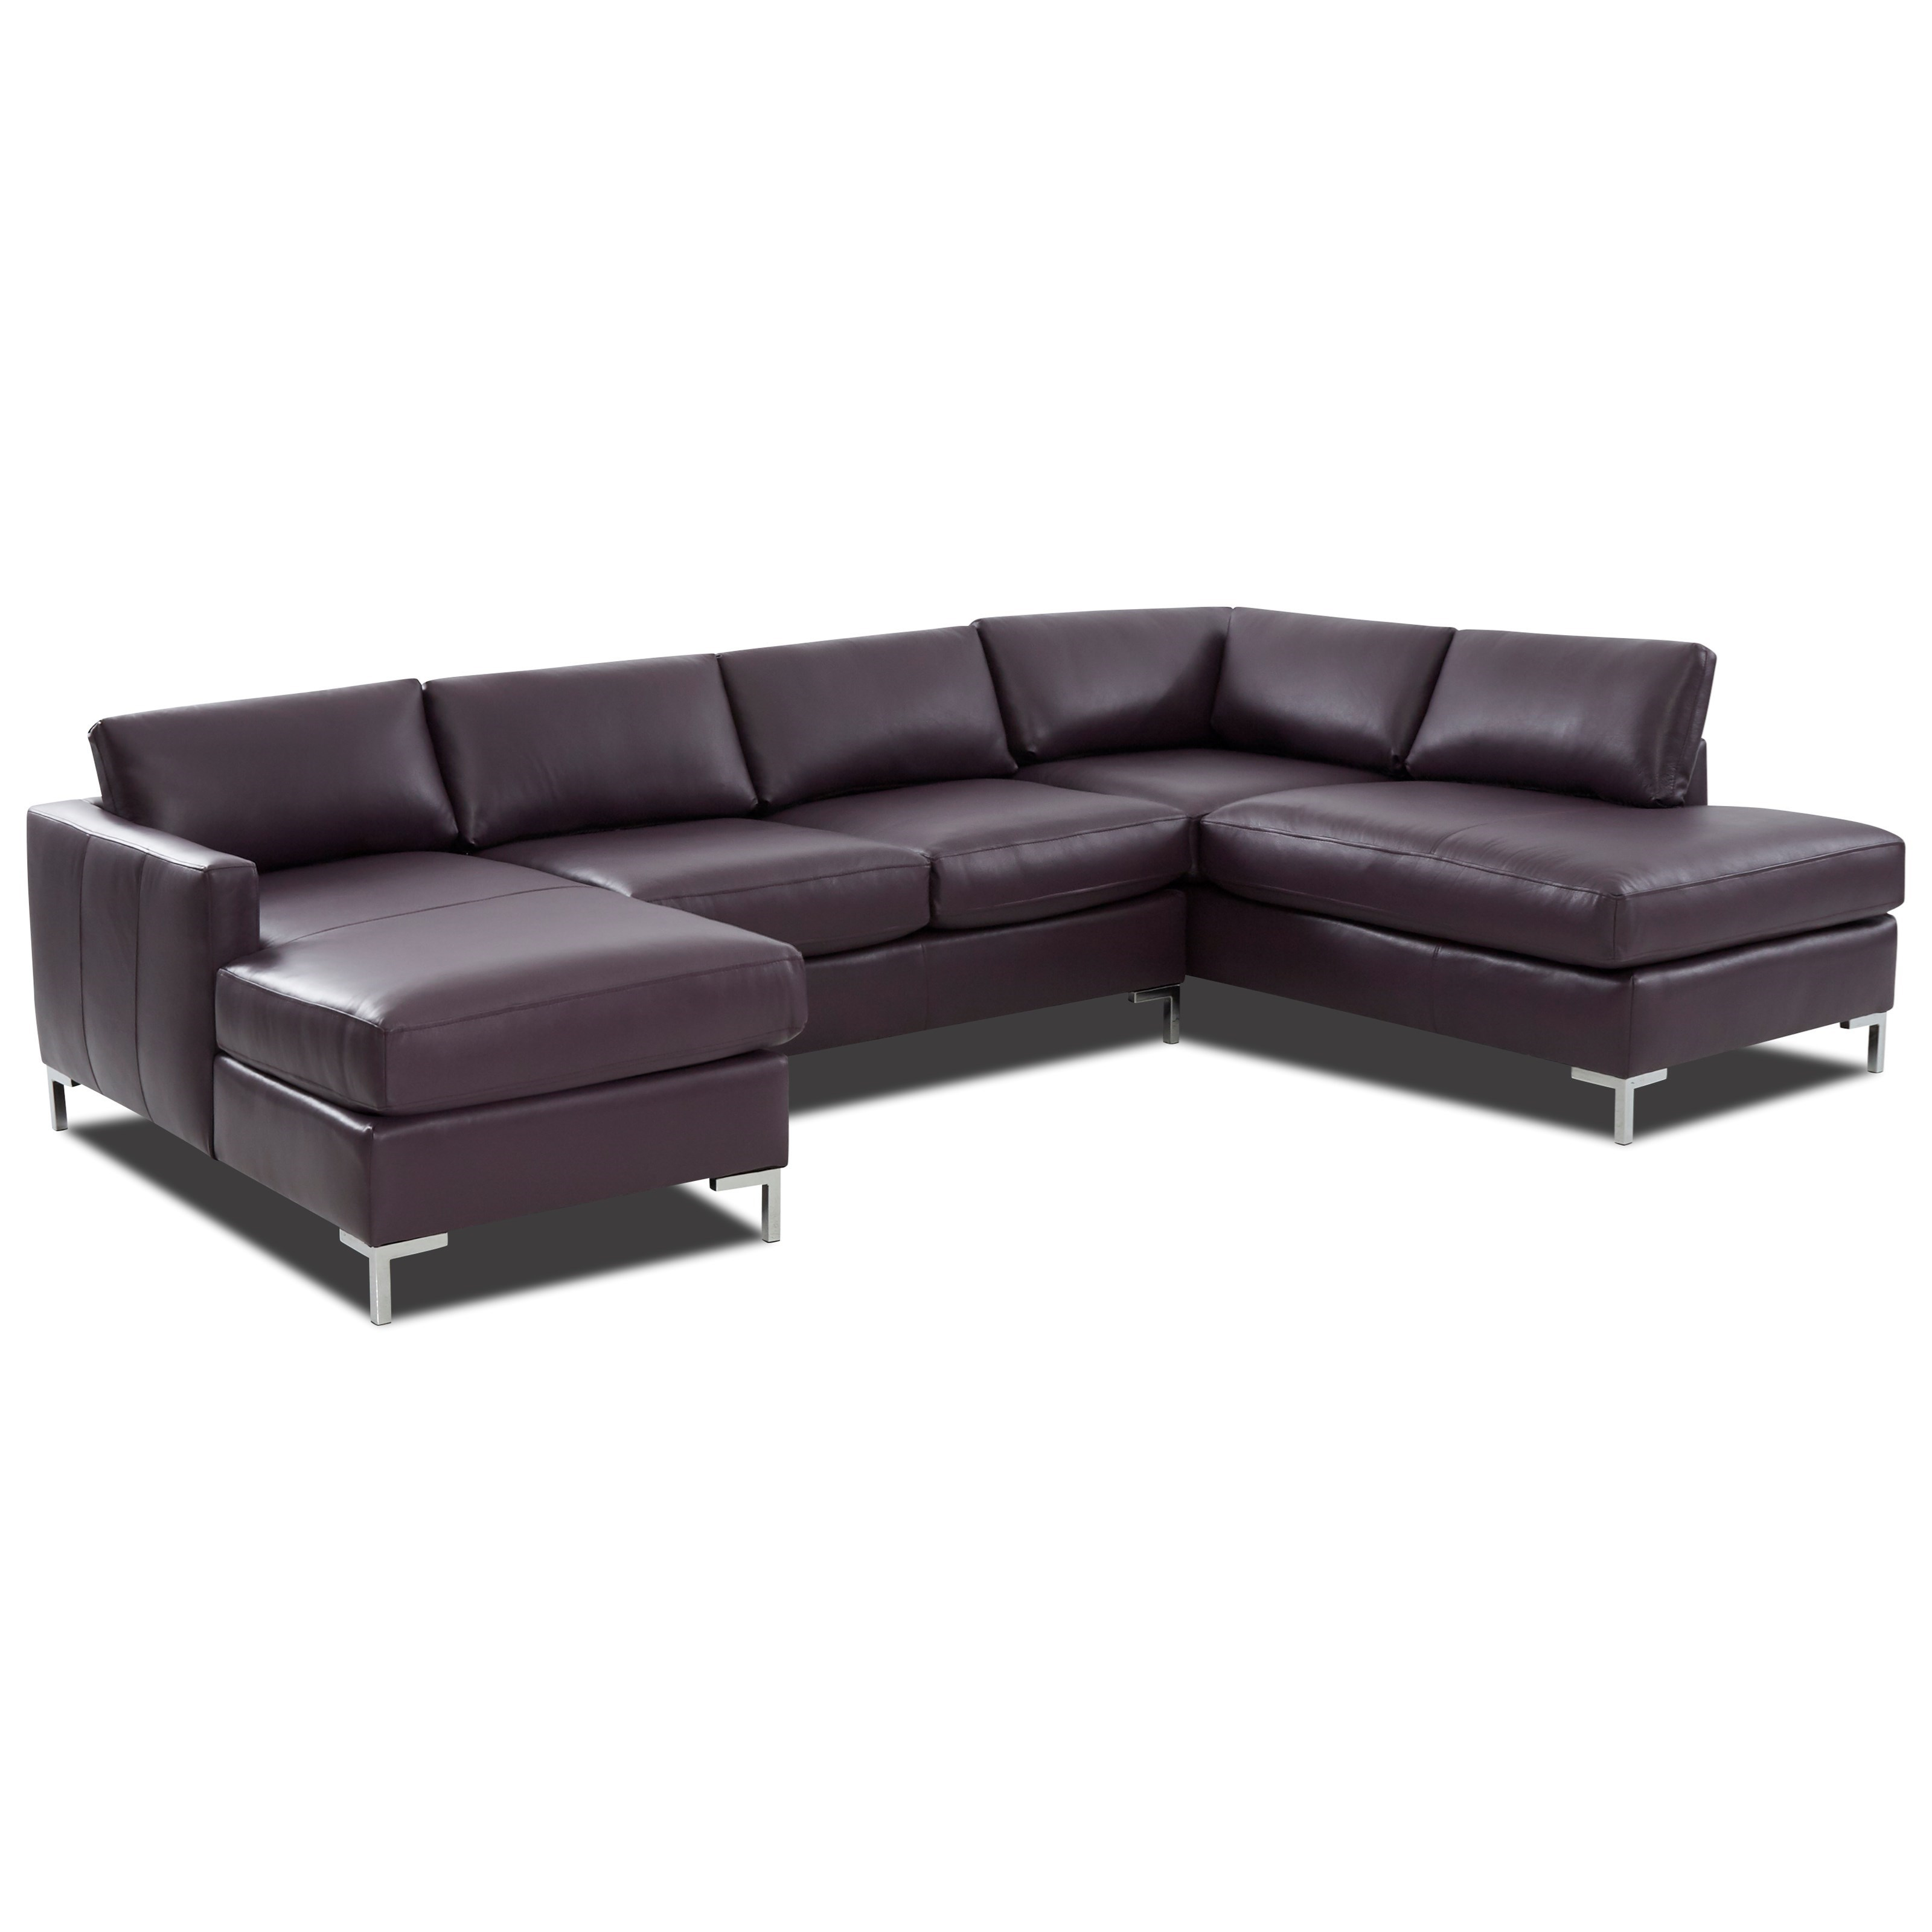 Marisol 4-Seat Sectional Sofa w/ RAF Sofa Chaise by Klaussner at Johnny Janosik